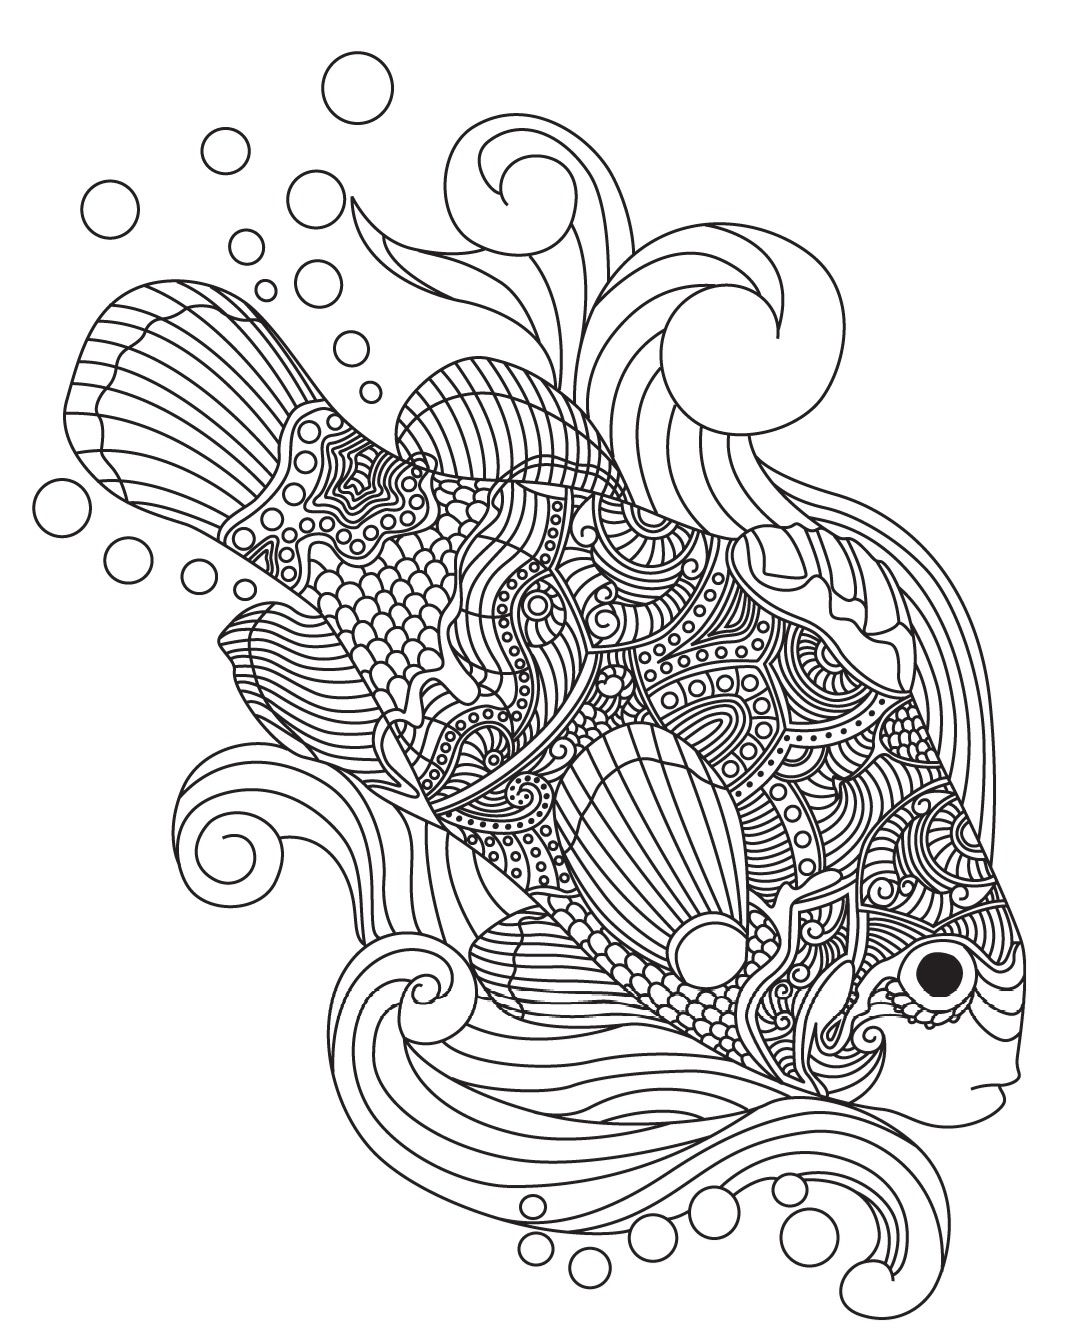 Fish Colorish coloring book for adults mandala relax by